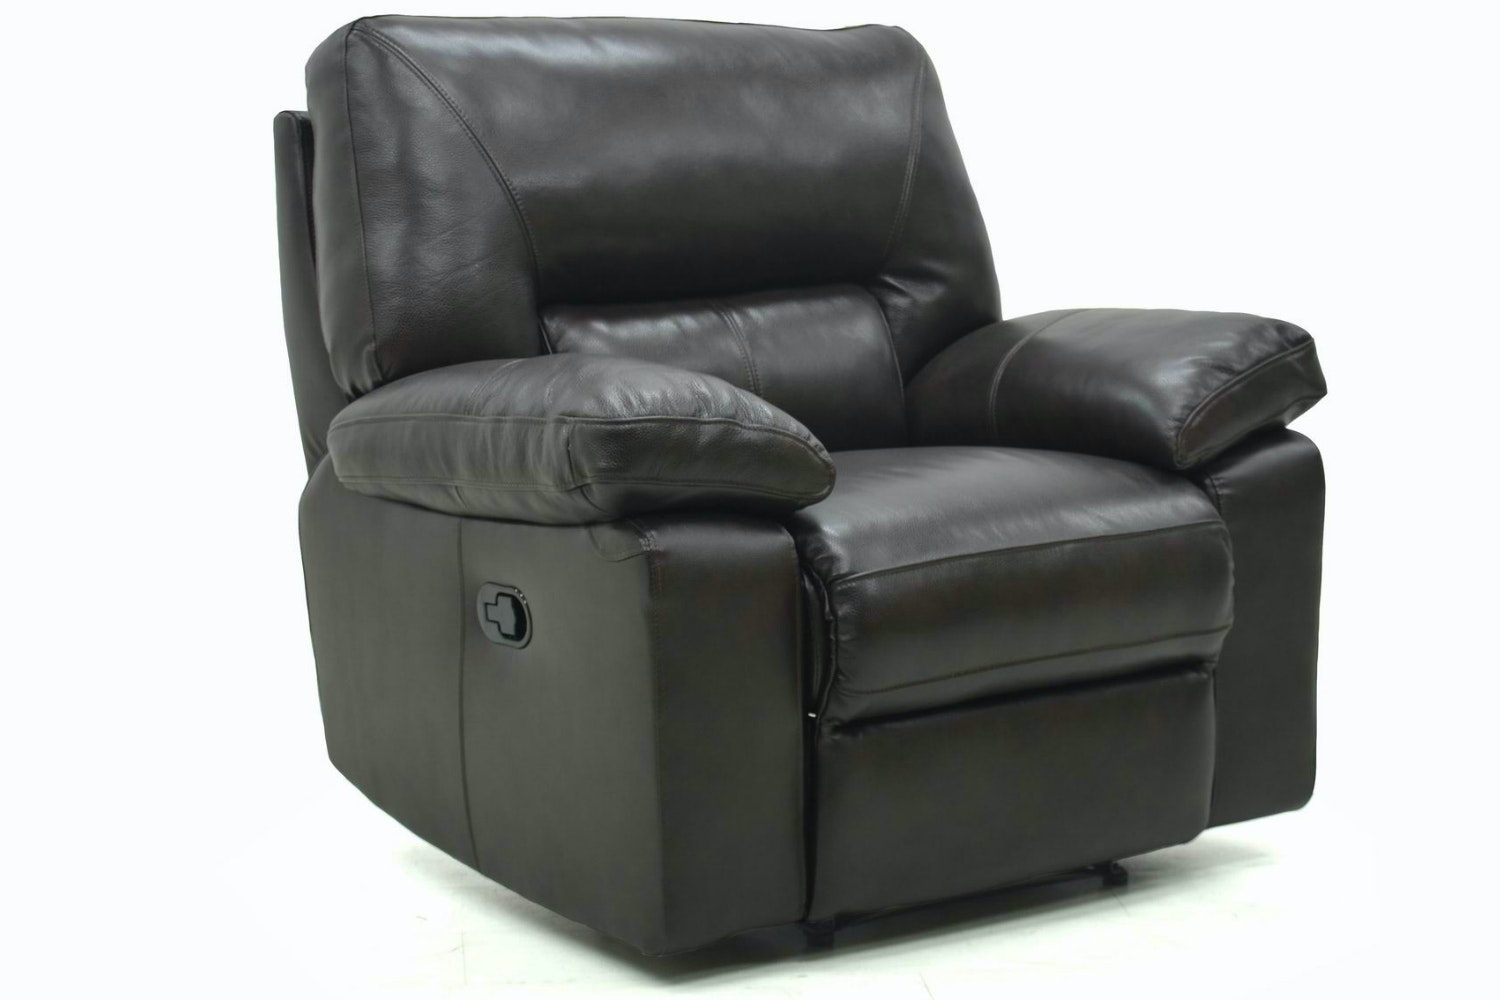 Cala Leather Recliner Armchair ...  sc 1 st  Harvey Norman & Cala Leather Recliner Armchair | Ireland islam-shia.org